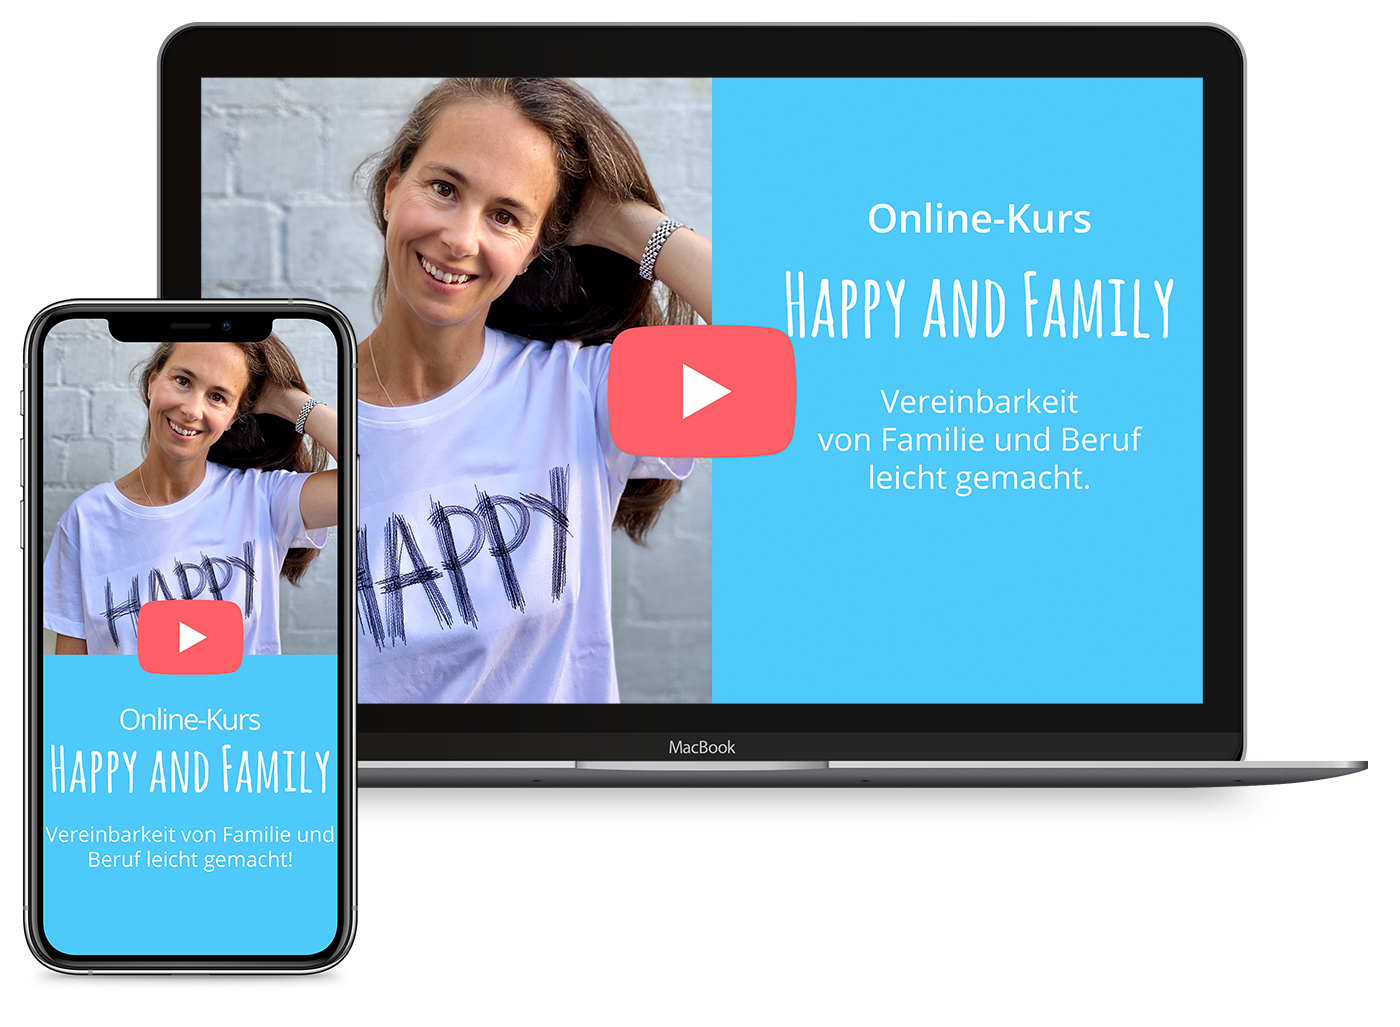 Onlinekurs Happy and Family